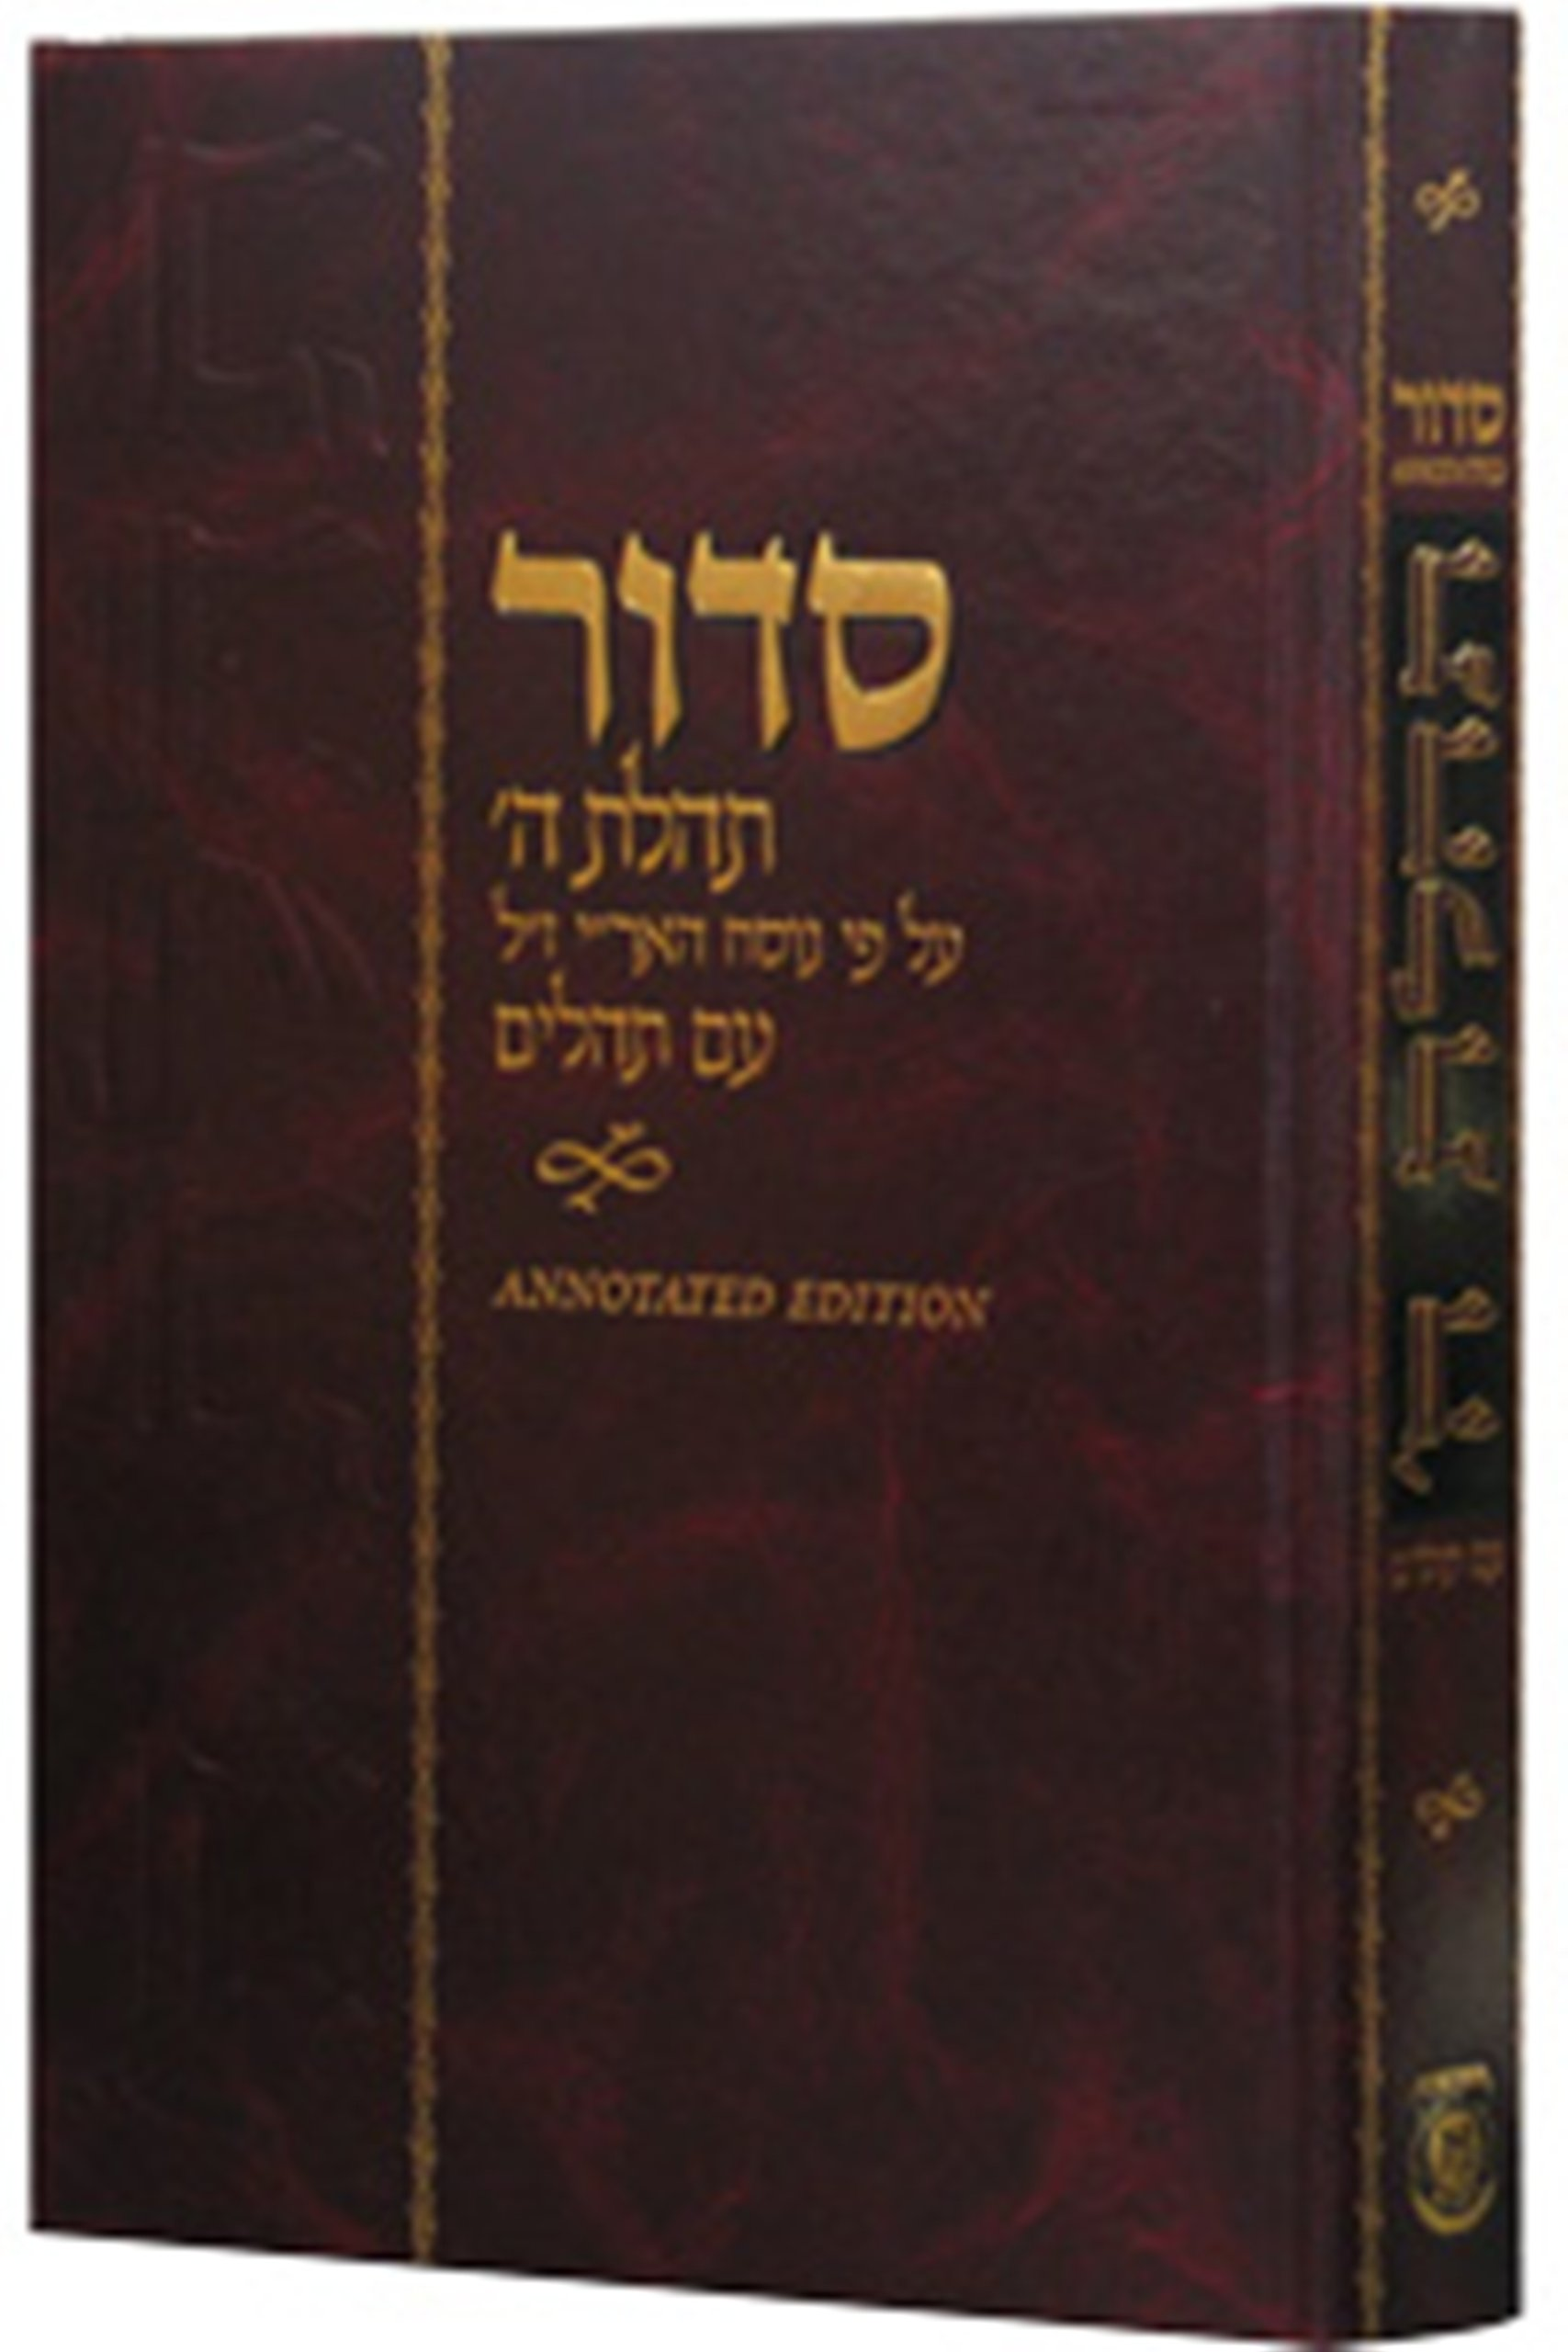 Siddur Annotated Hebrew Large (Hebrew Edition)